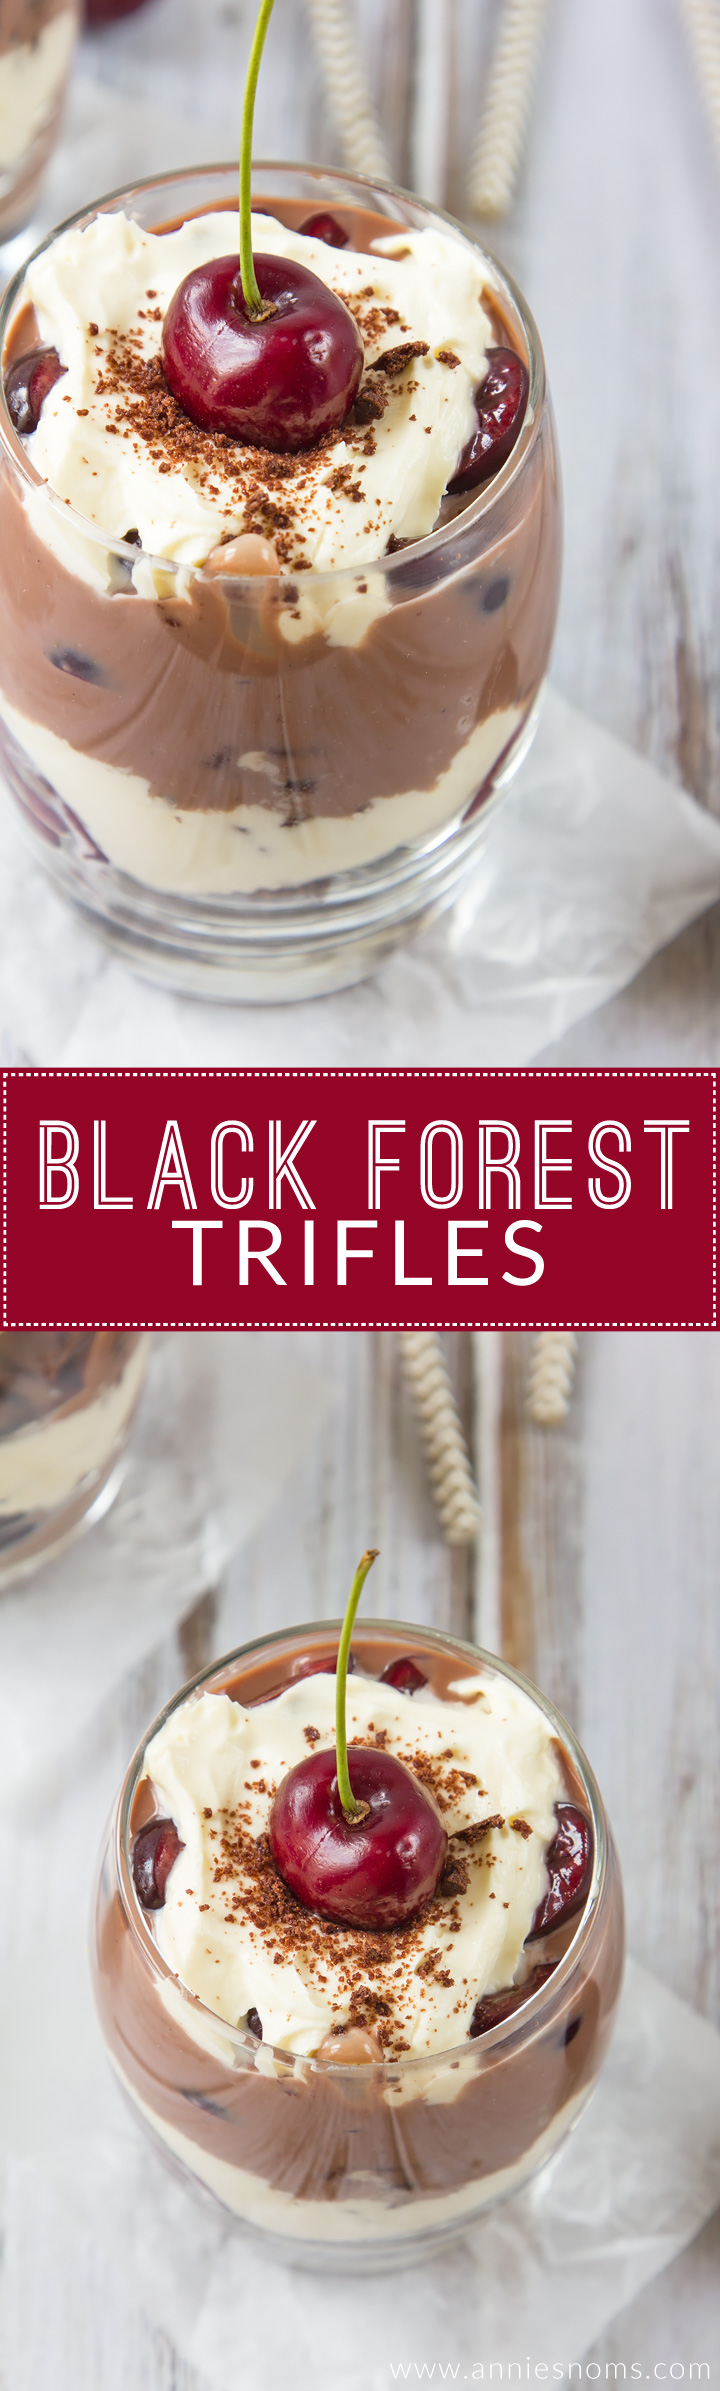 My individual sized Black Forest Trifles are packed with rich chocolate cake, whipped cream, fresh cherries and a gorgeous, thick chocolate custard. A make ahead, no-bake dessert the whole family will love!